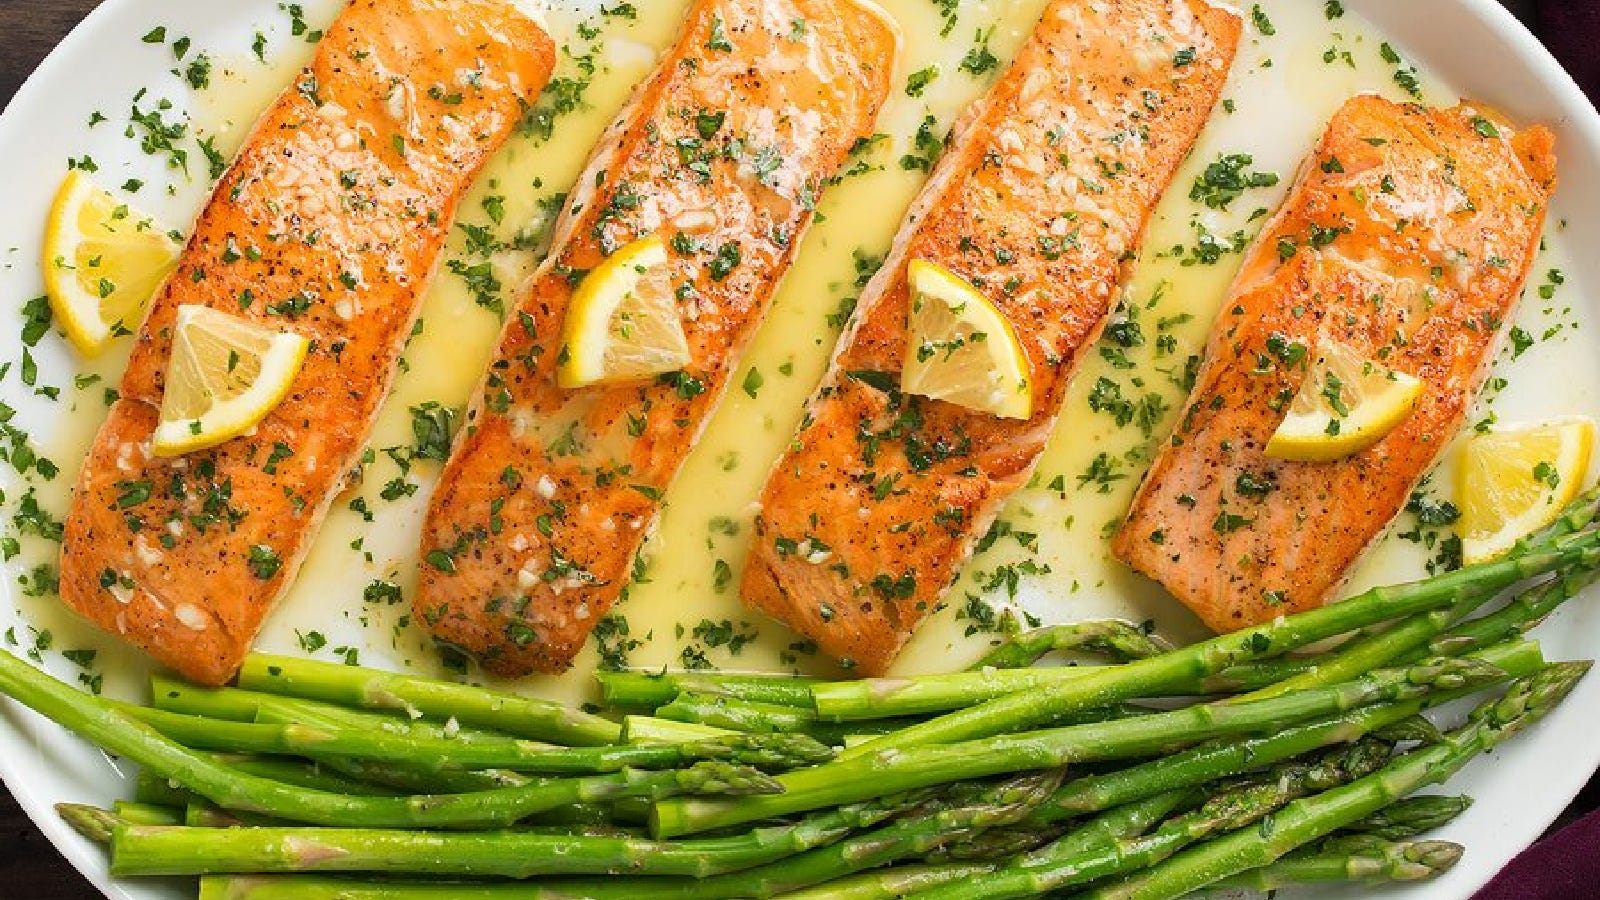 A large oval plate, plated with four salmon filets, with a side of asparagus, all covered with lemon butter sauce and garnished with lemon wedges.